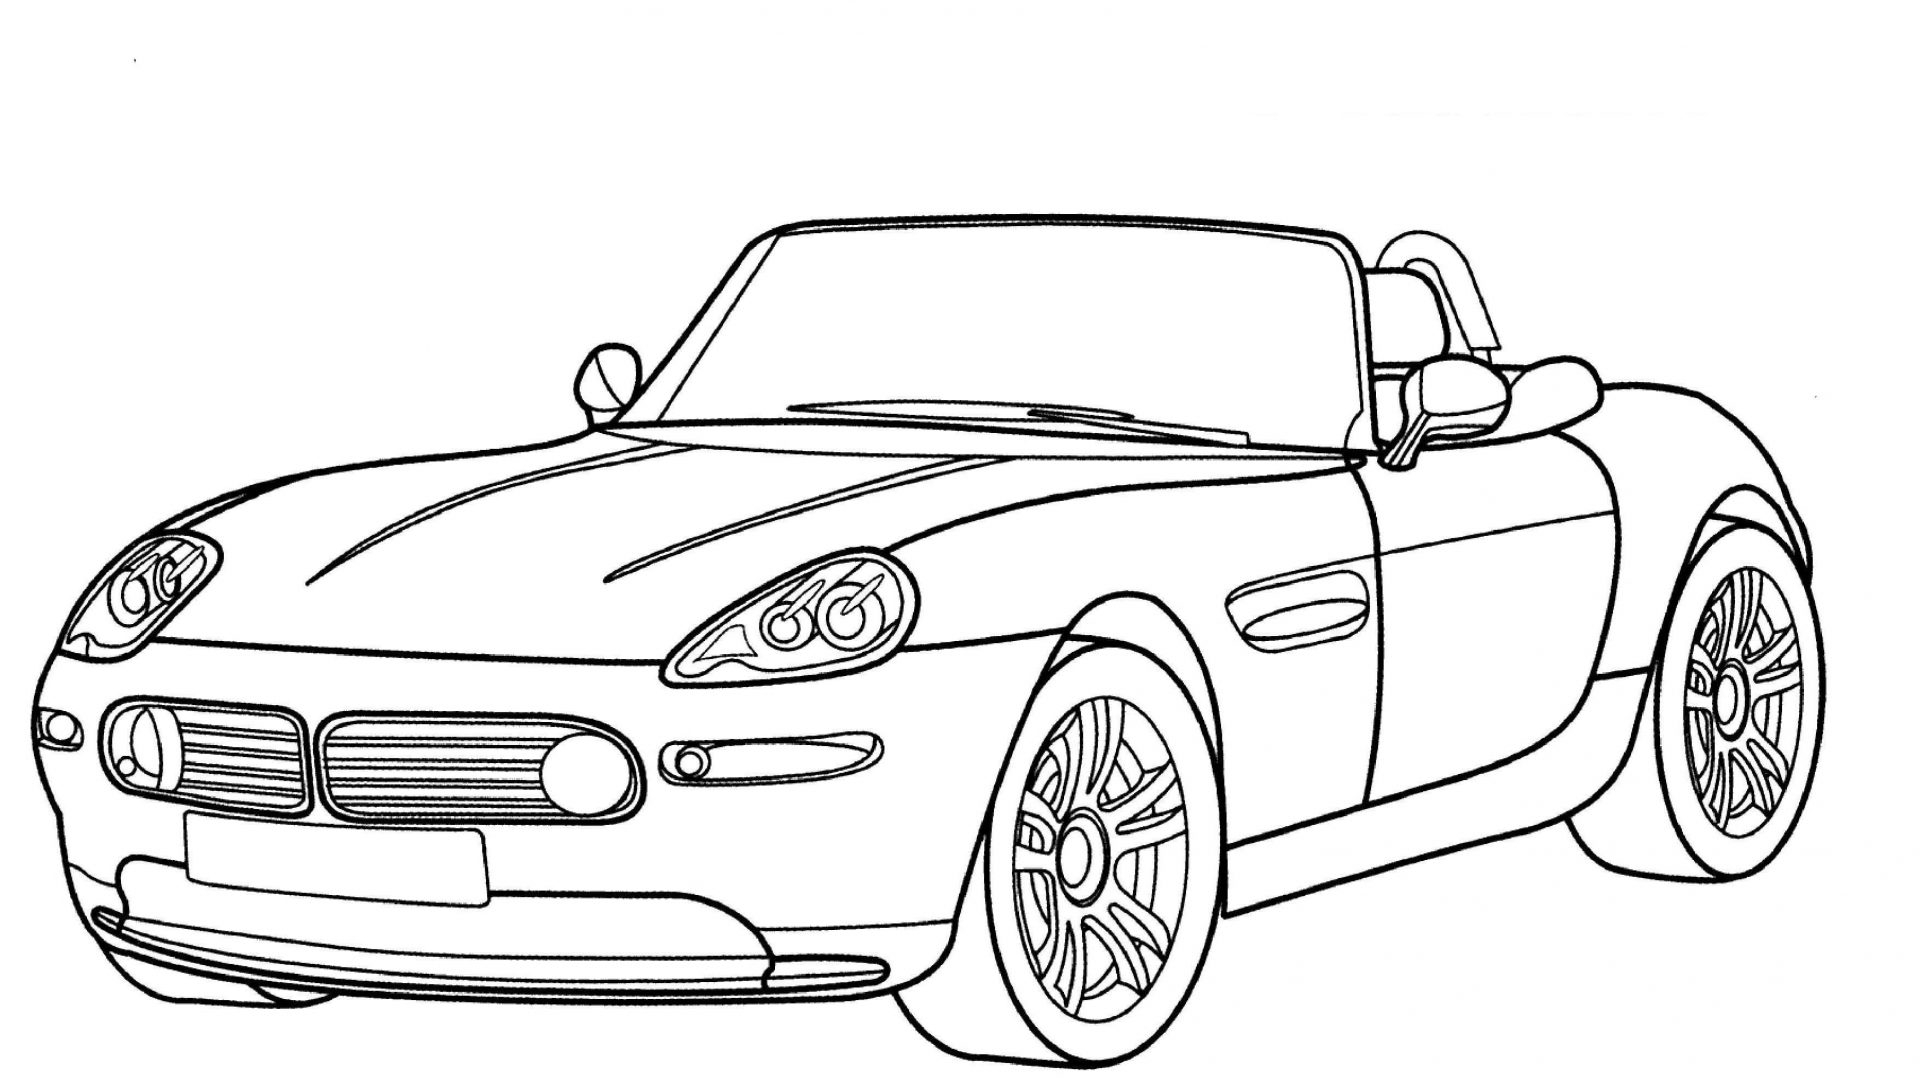 Bmw X6 Coloring Page Free Printable Pages Sketch Coloring Page